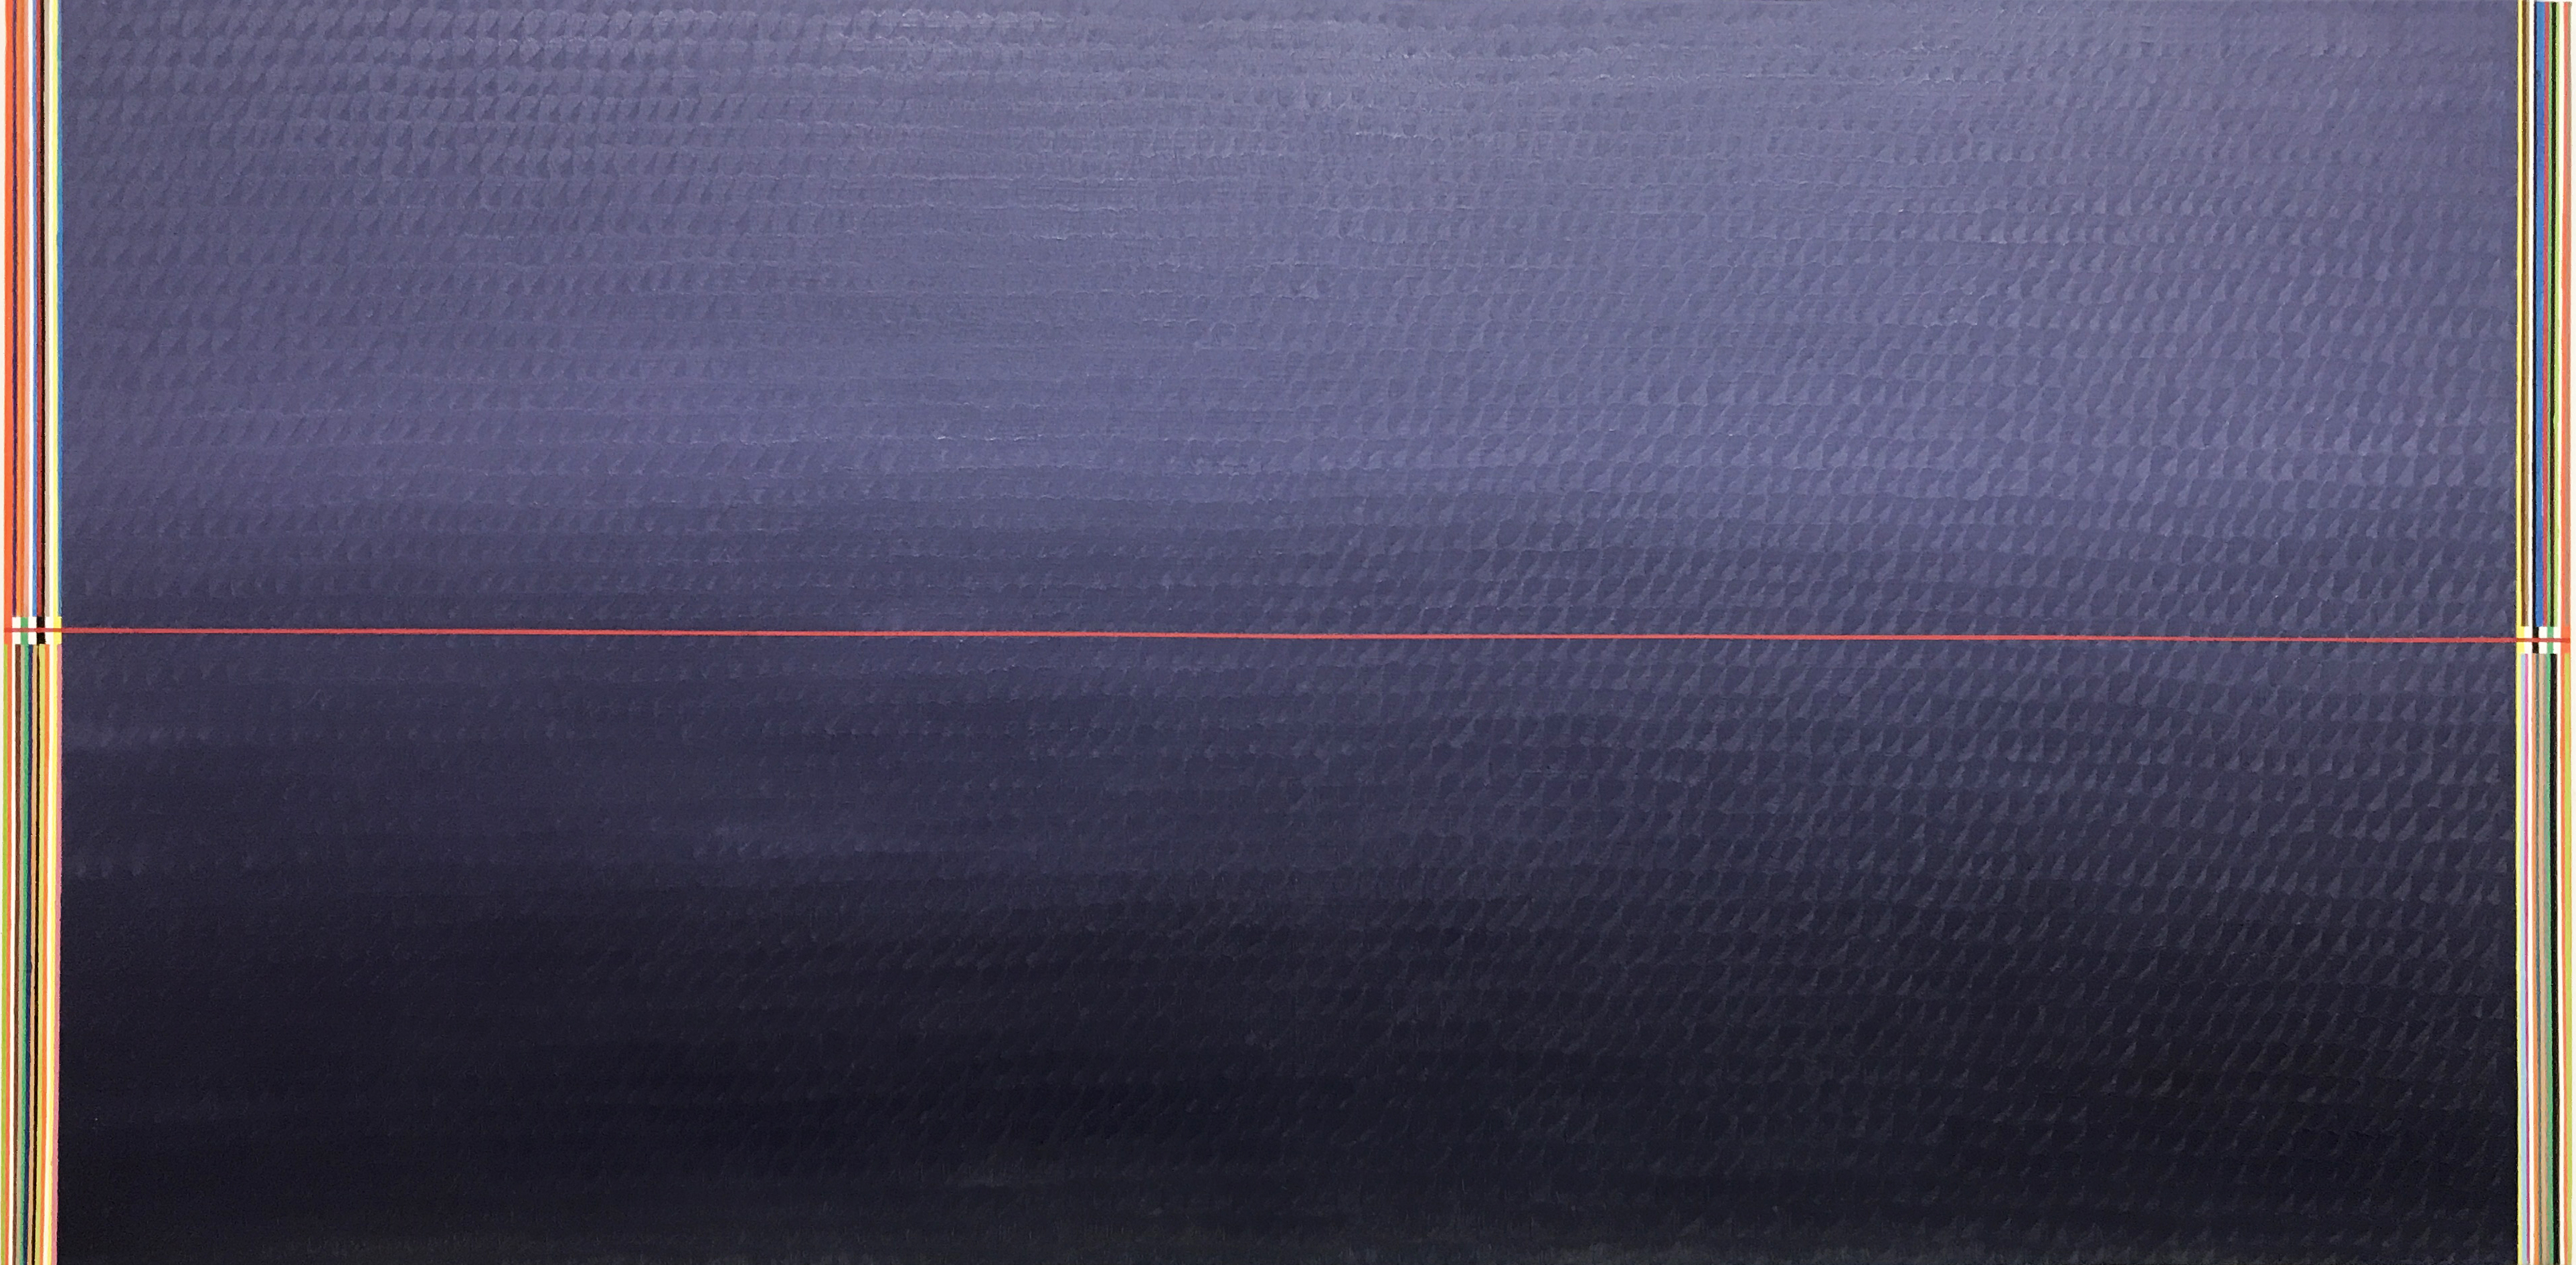 Redline horizon (100x200cm) 2017 (private collection, New York)